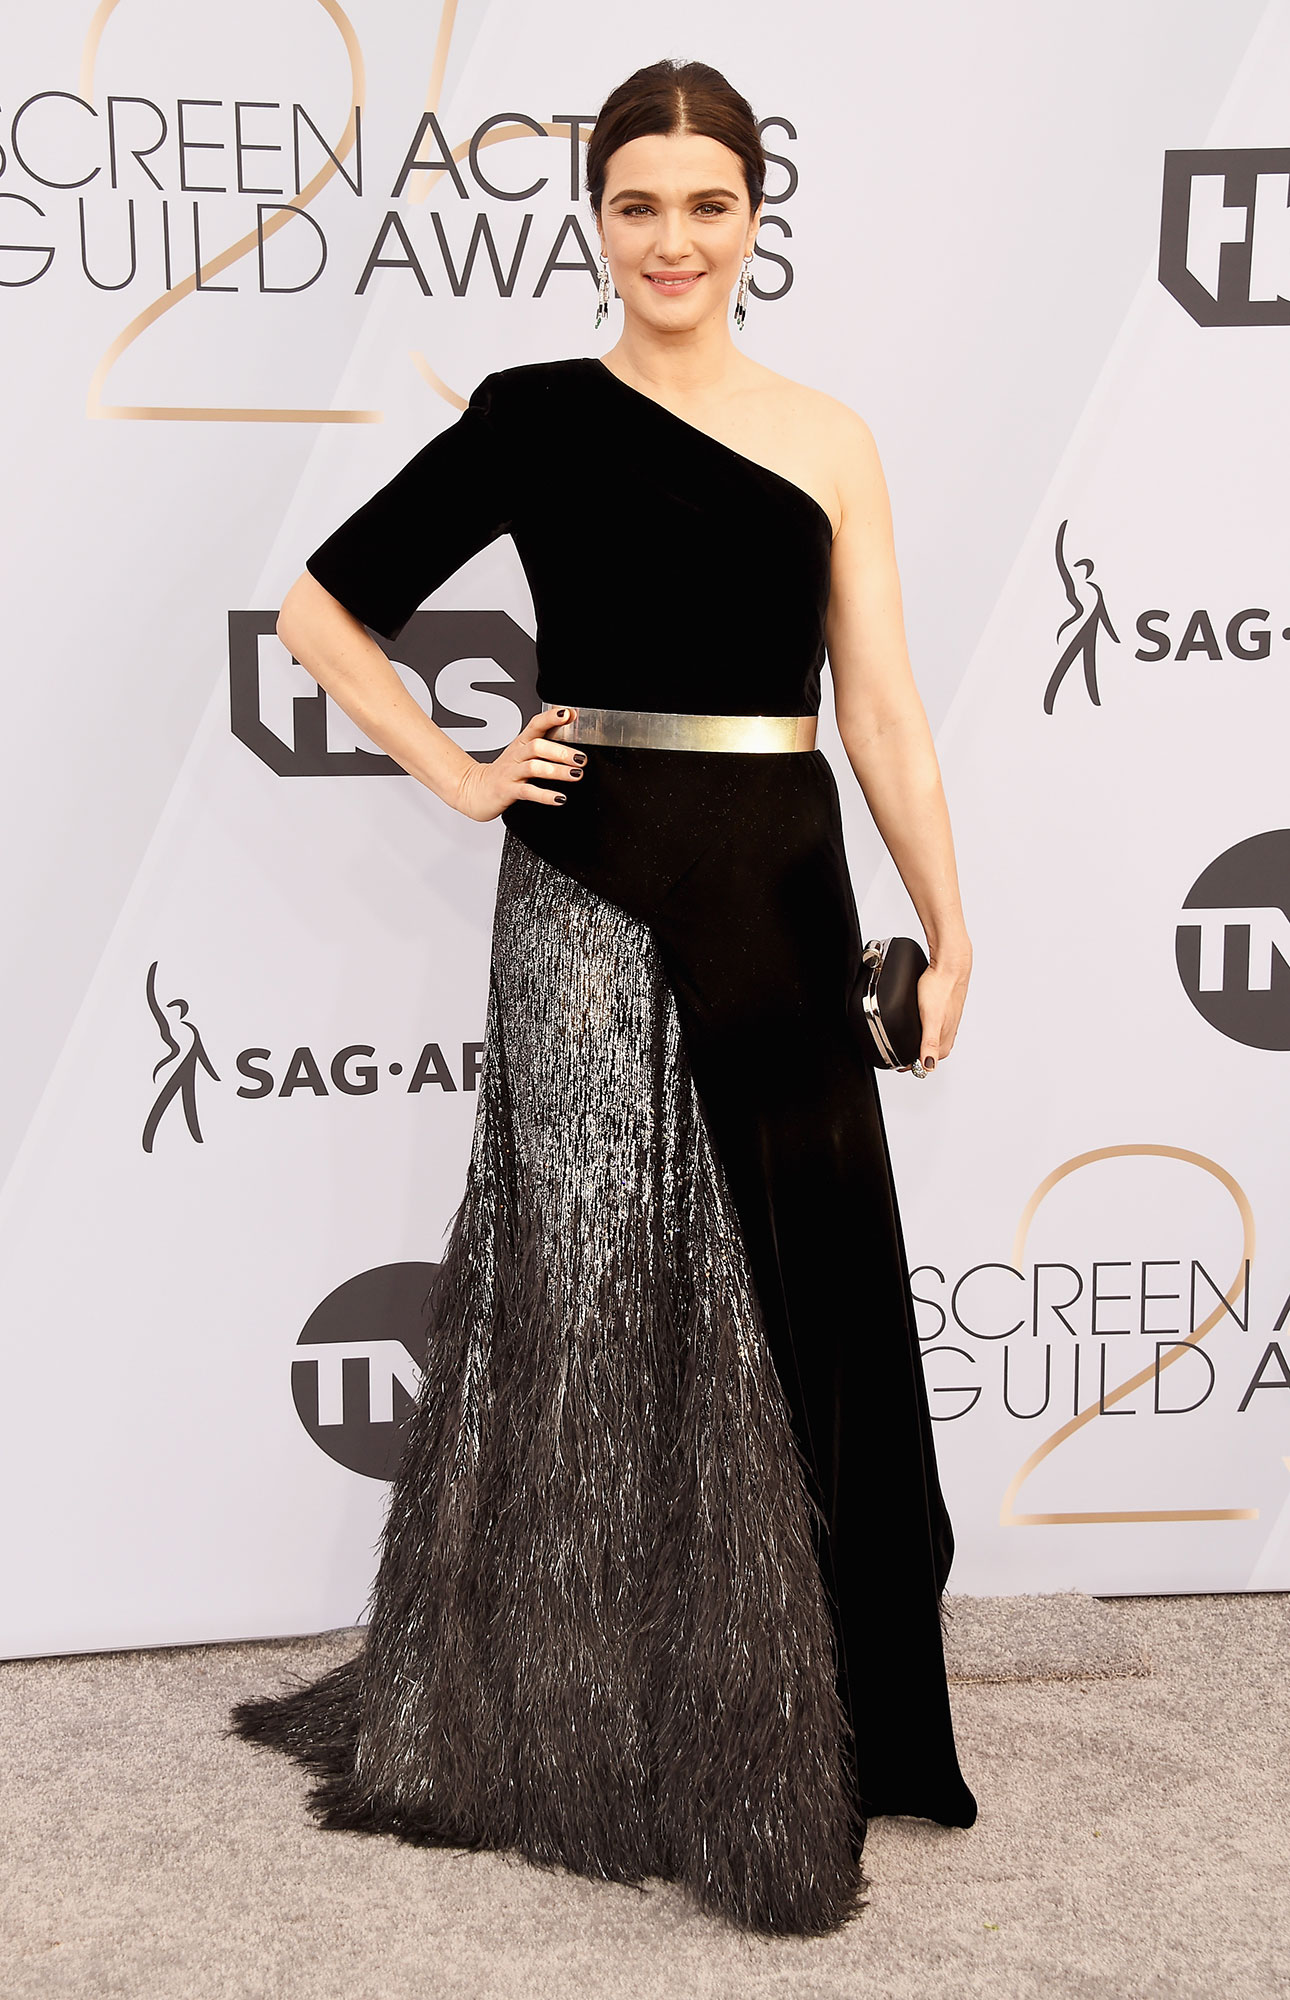 Happy Birthday, Rachel Weisz! See Her Hottest Red Carpet Looks - When attending the 2019 SAG Awards, Weisz wore a funky chic one-sleeve dress with silver feathers on one side of the skirt with a shiny belt around her waist.